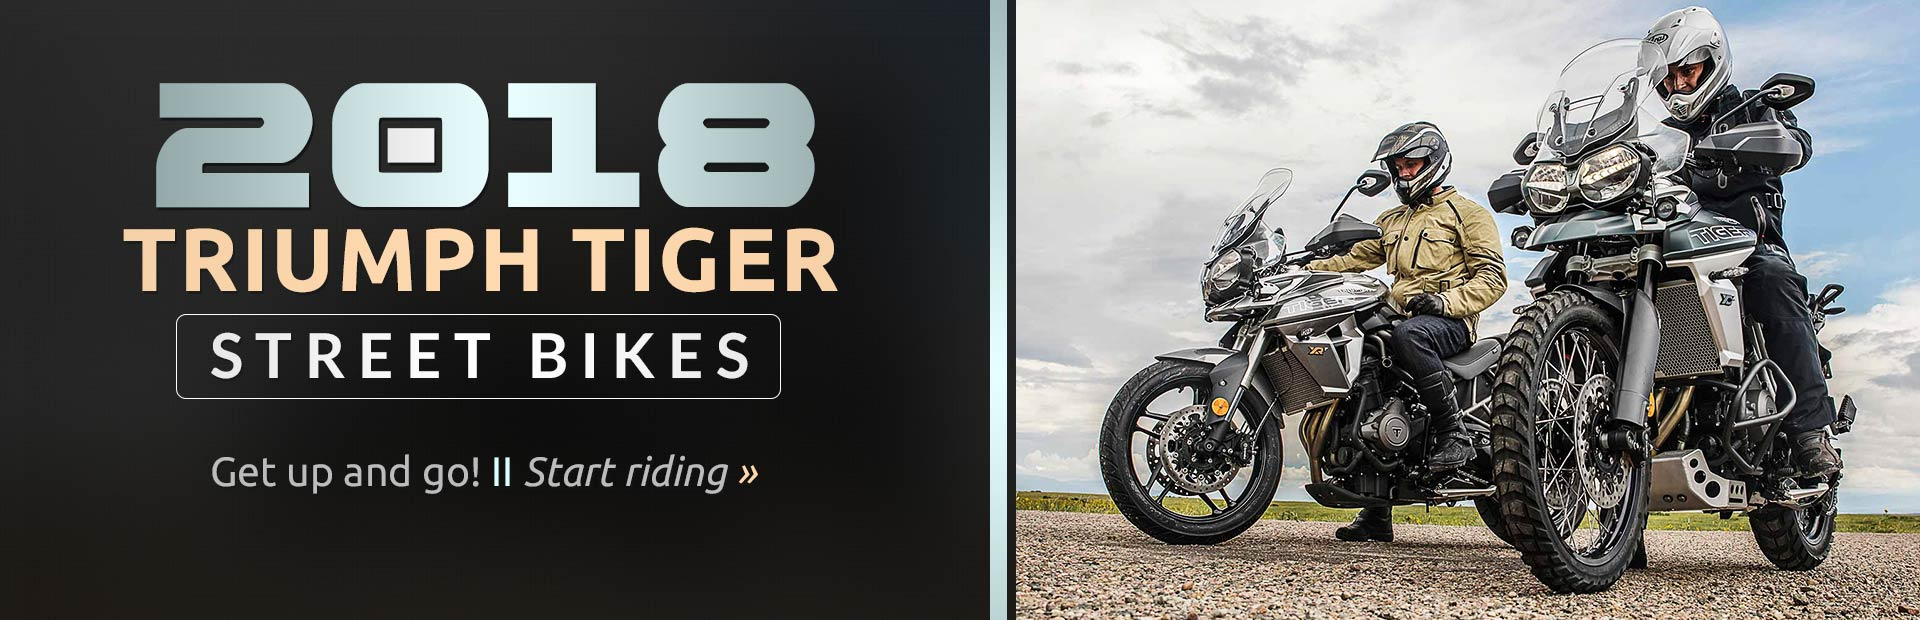 2018 Triumph Tiger Street Bikes: Click here to view the models.